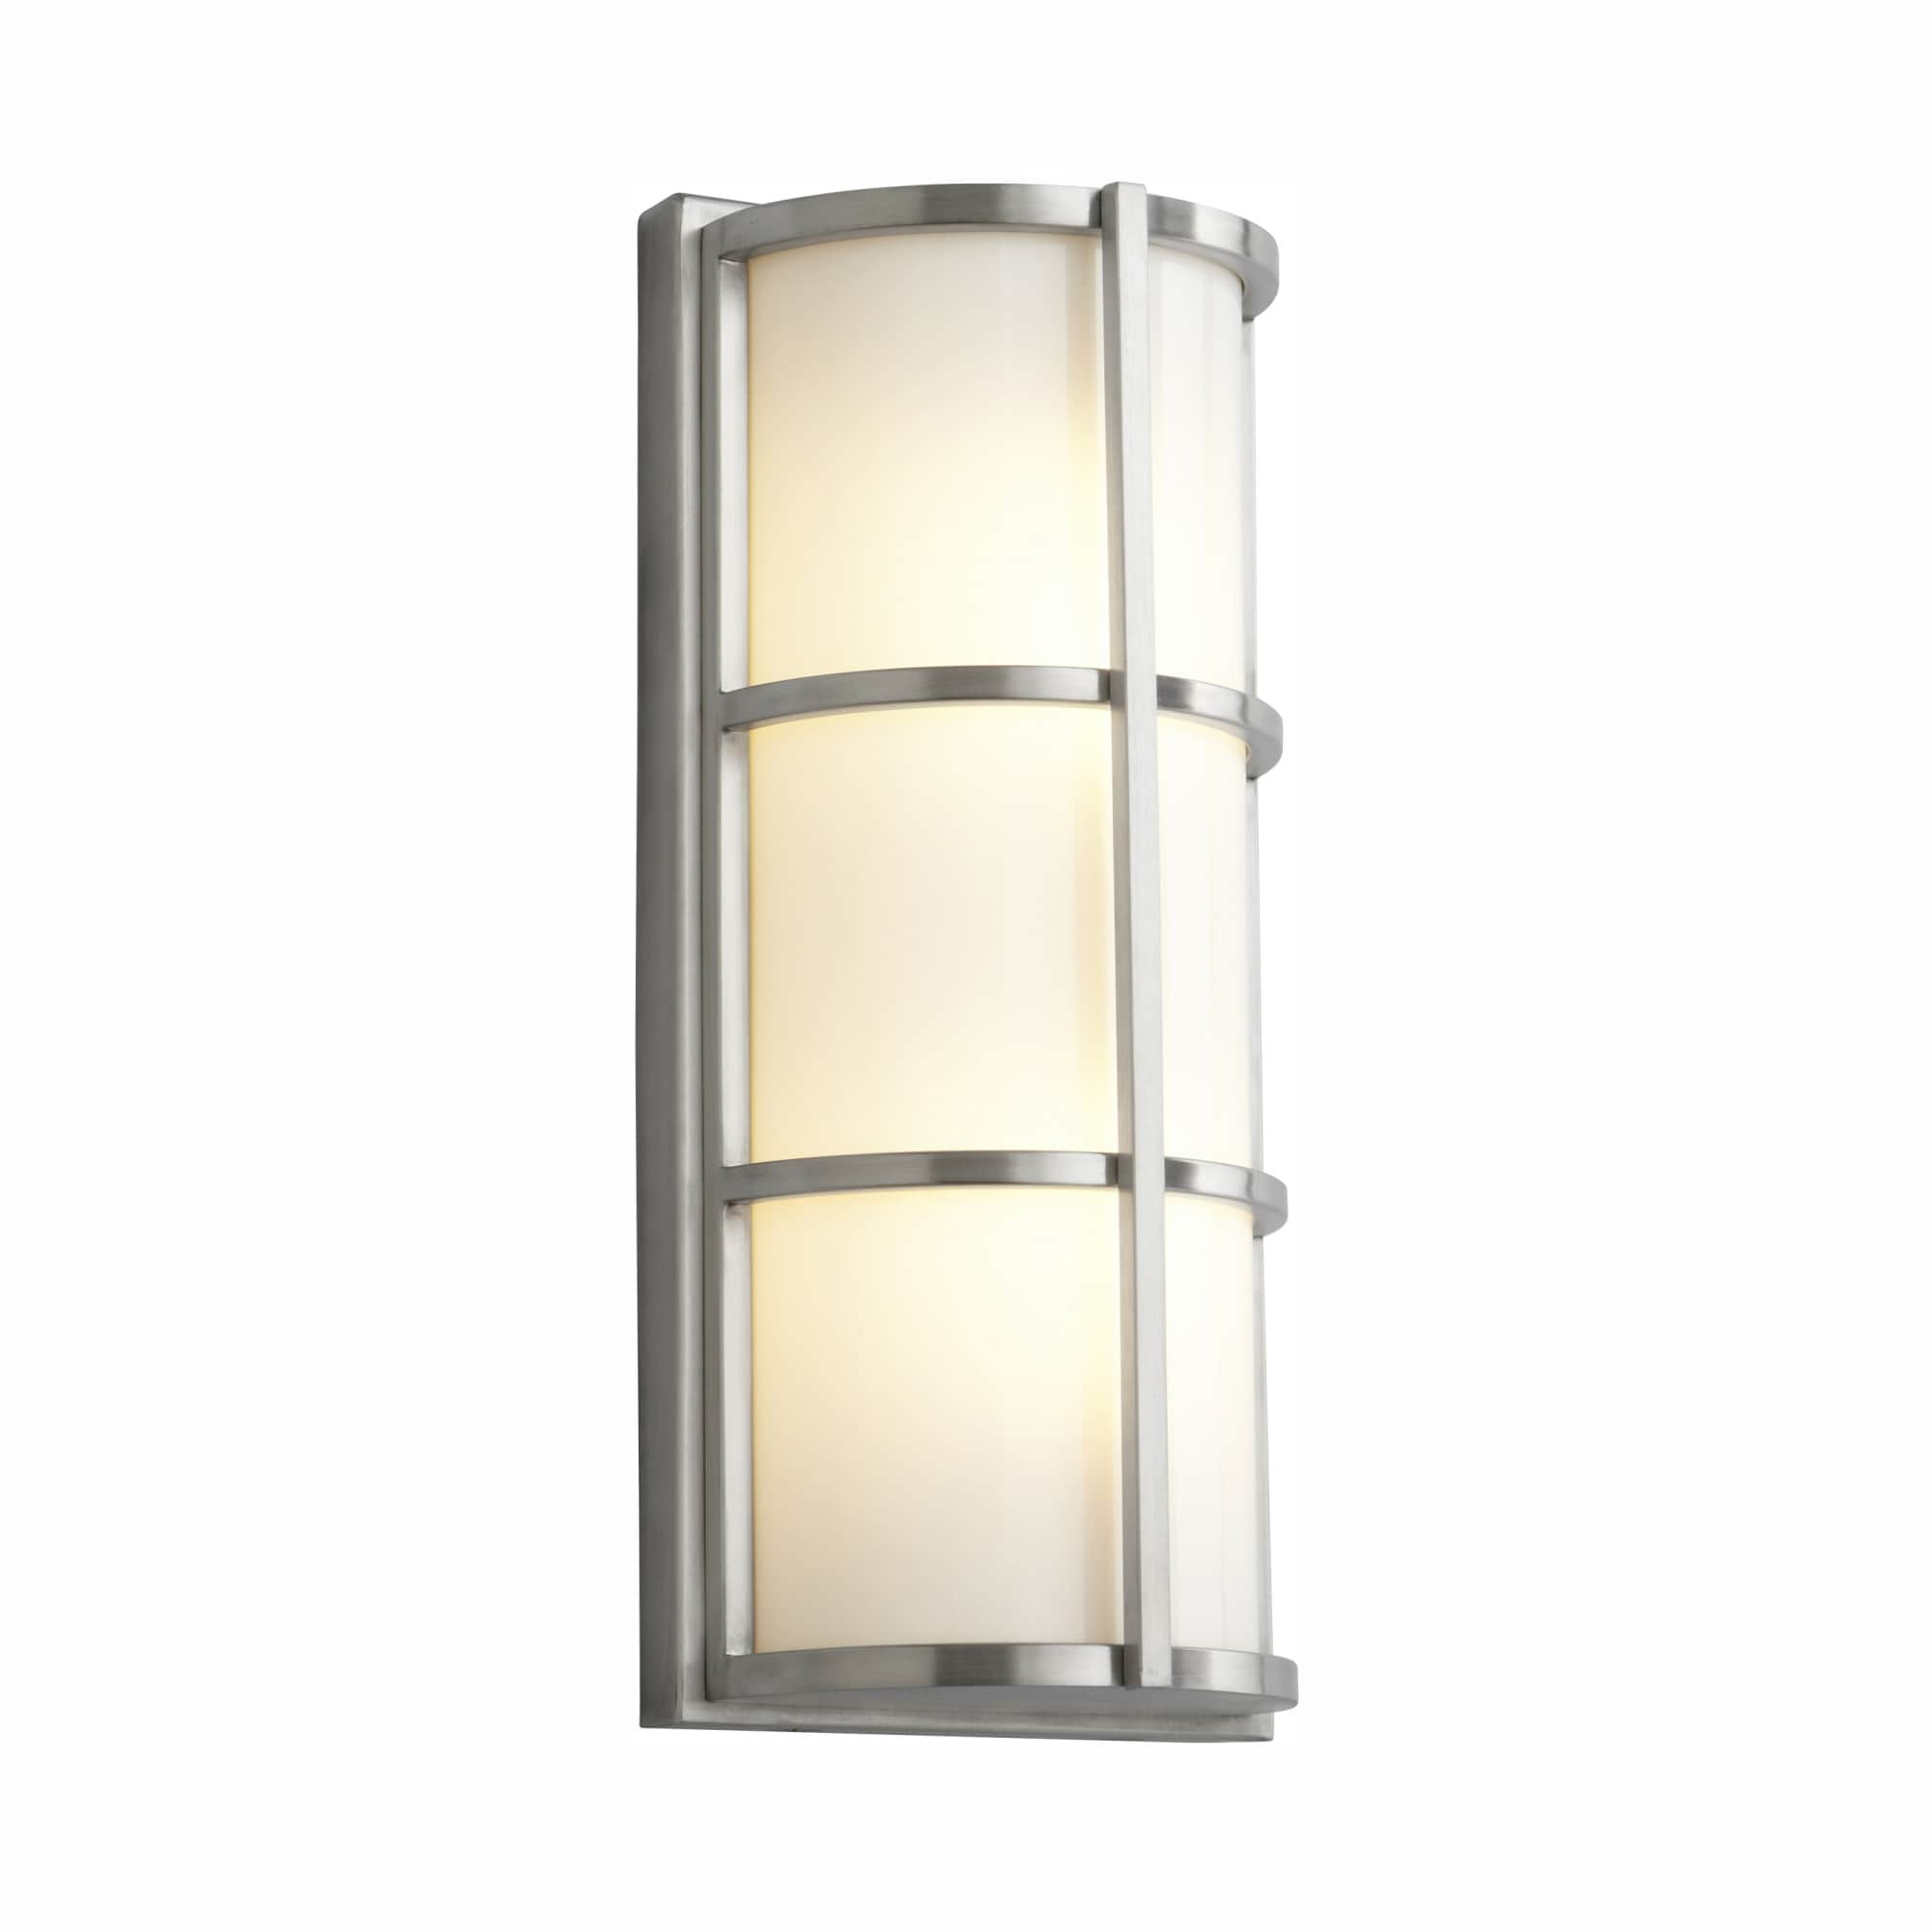 Shop Black Friday Deals On Oxygen Lighting 37 712 Leda 17 Tall 1 Light Commercial 277v Outdoor Led Wall Sconce With Acrylic Half Cylinder Shade Overstock 17036755